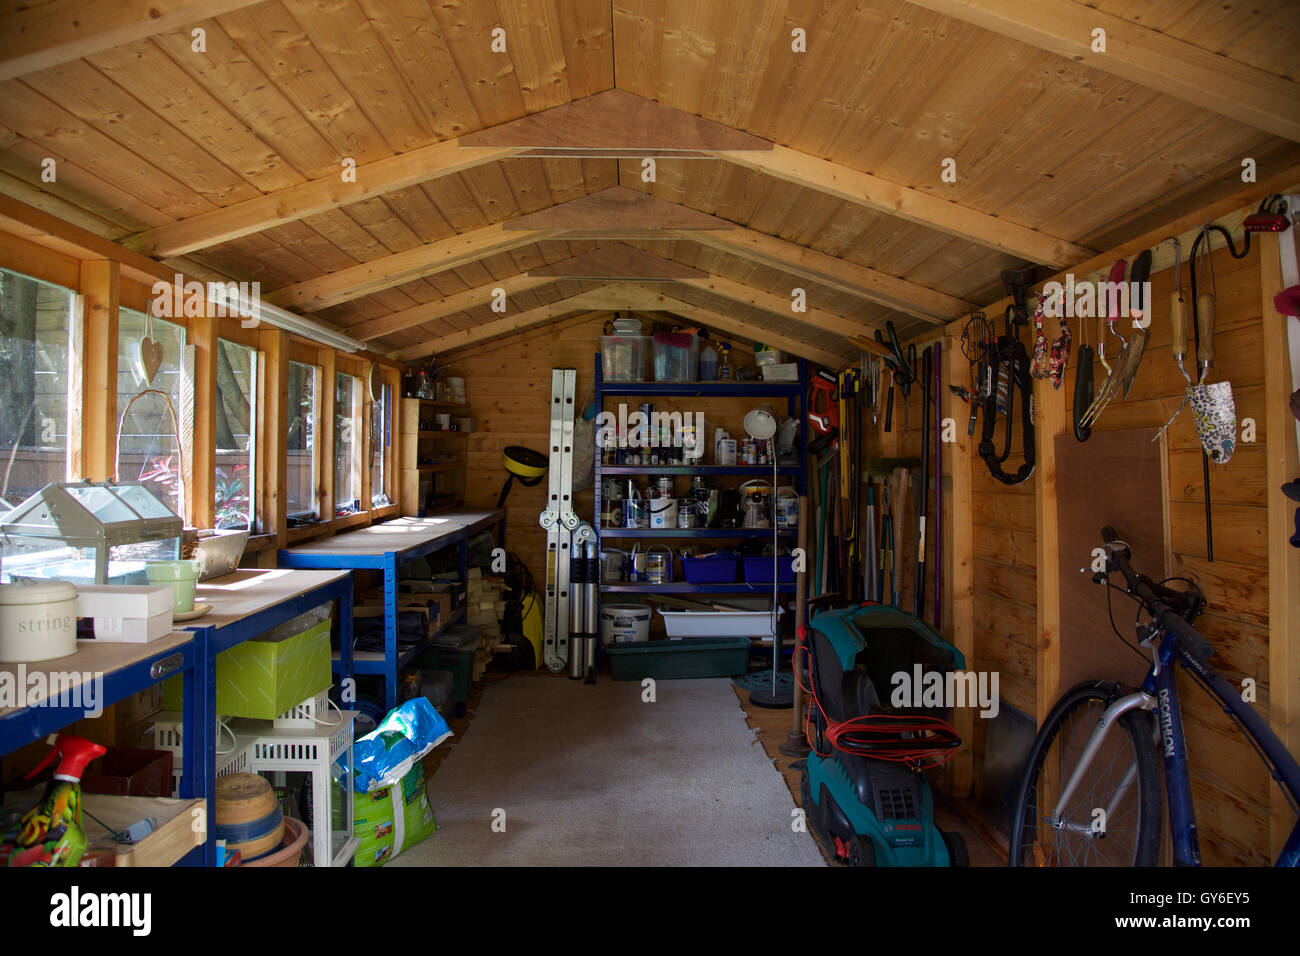 Garden Sheds Inside inside of wooden garden shed with roof with workbench hanging